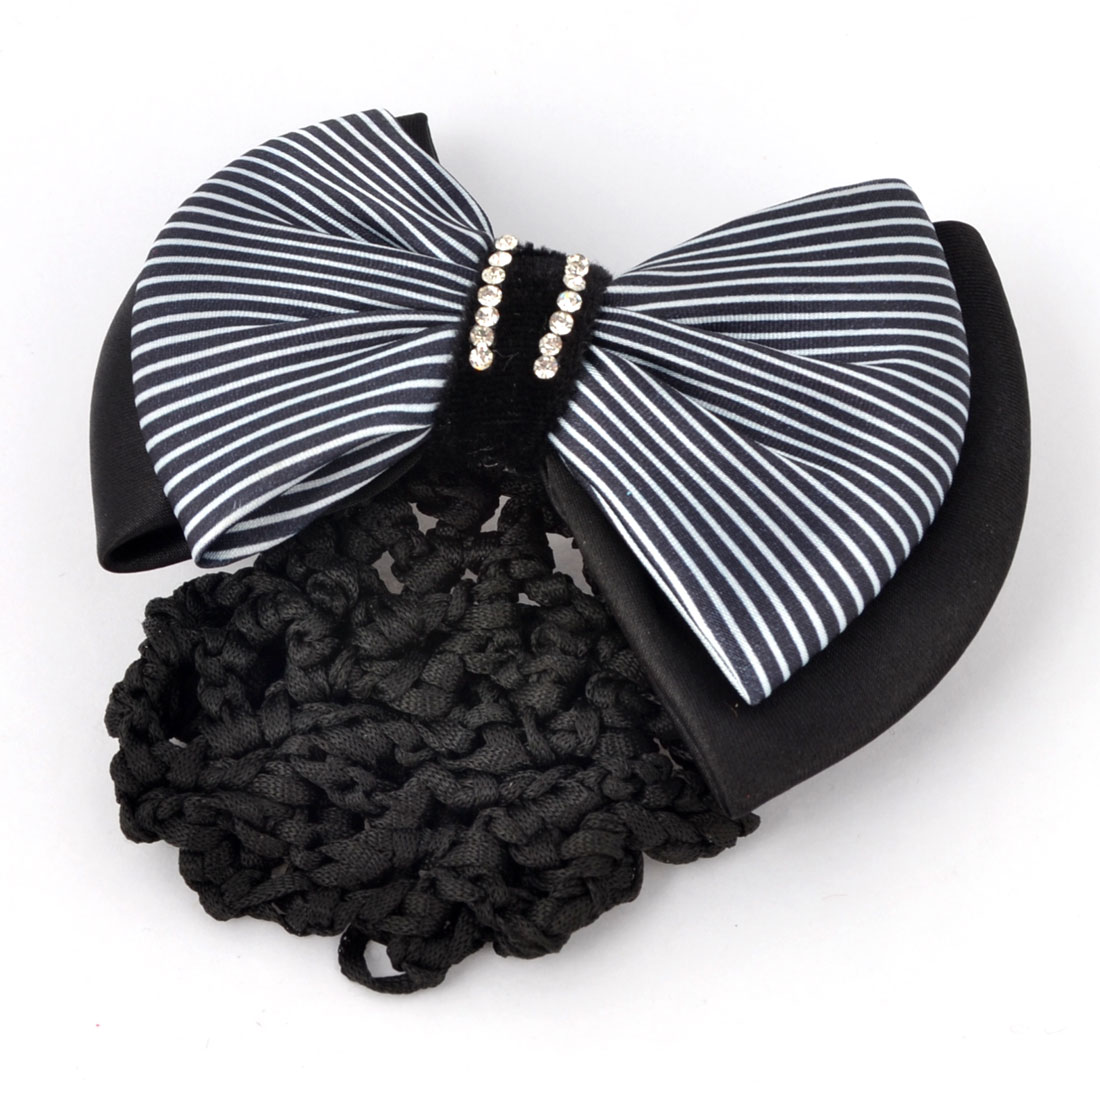 Black White Glitter Rhinestones Inlaid Striped Polyester Bowknot Decor Snood Net Barrette French Hair Clip Bun Cover for Ladies